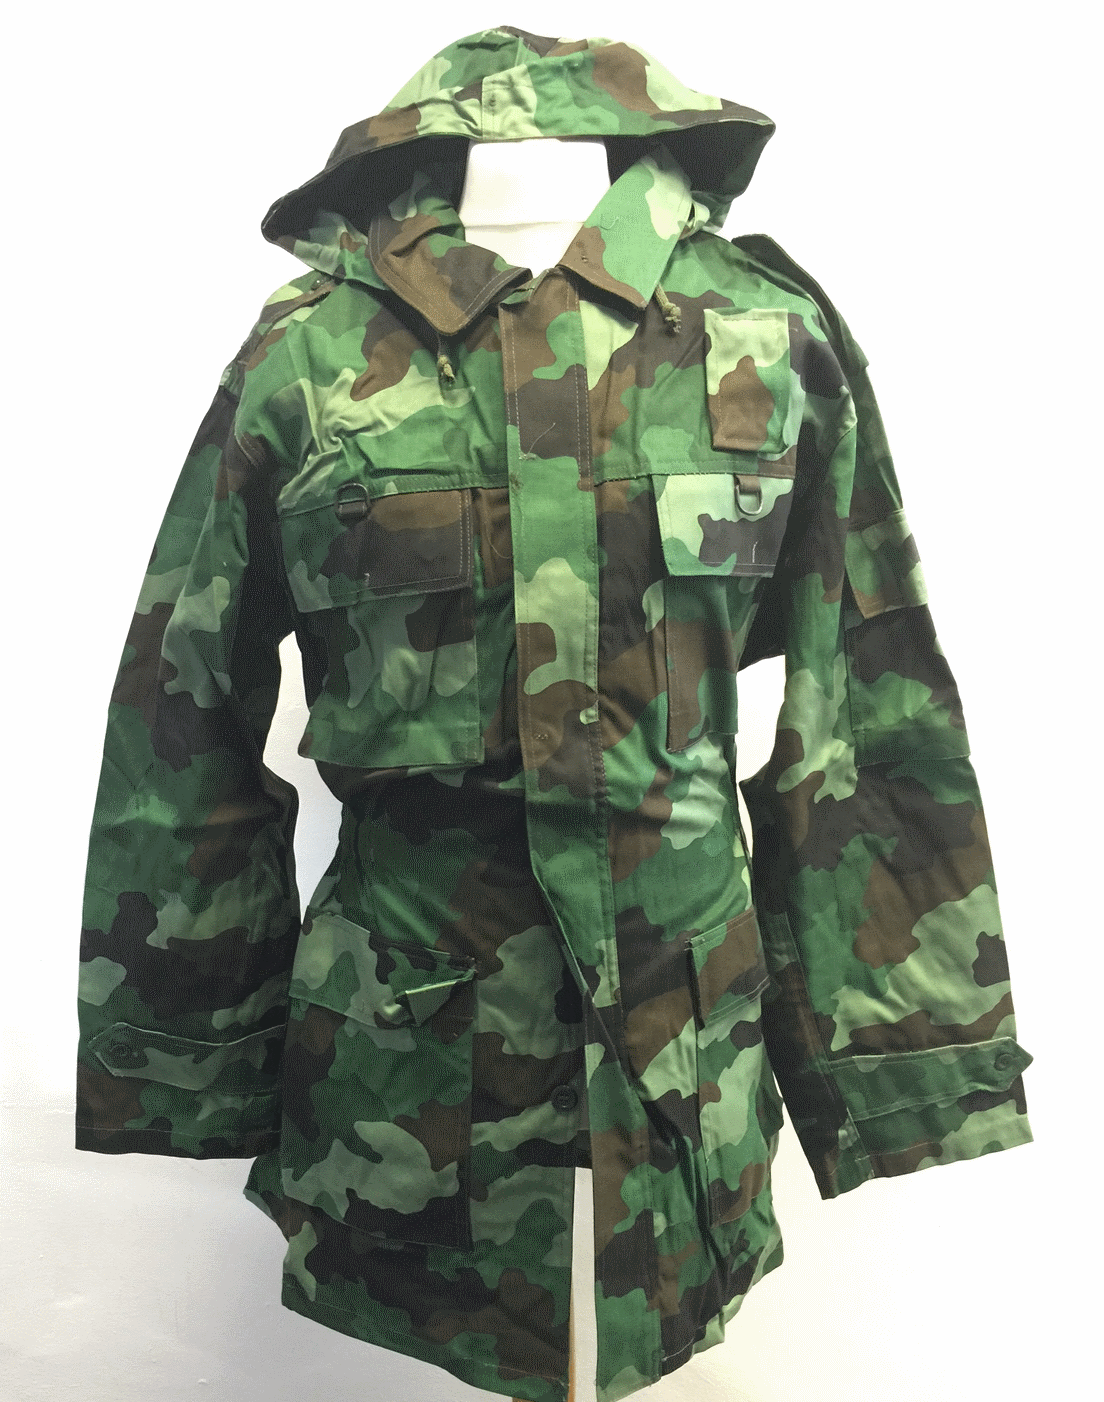 Serbian army surplus woodland camouflage combat field jacket NEW